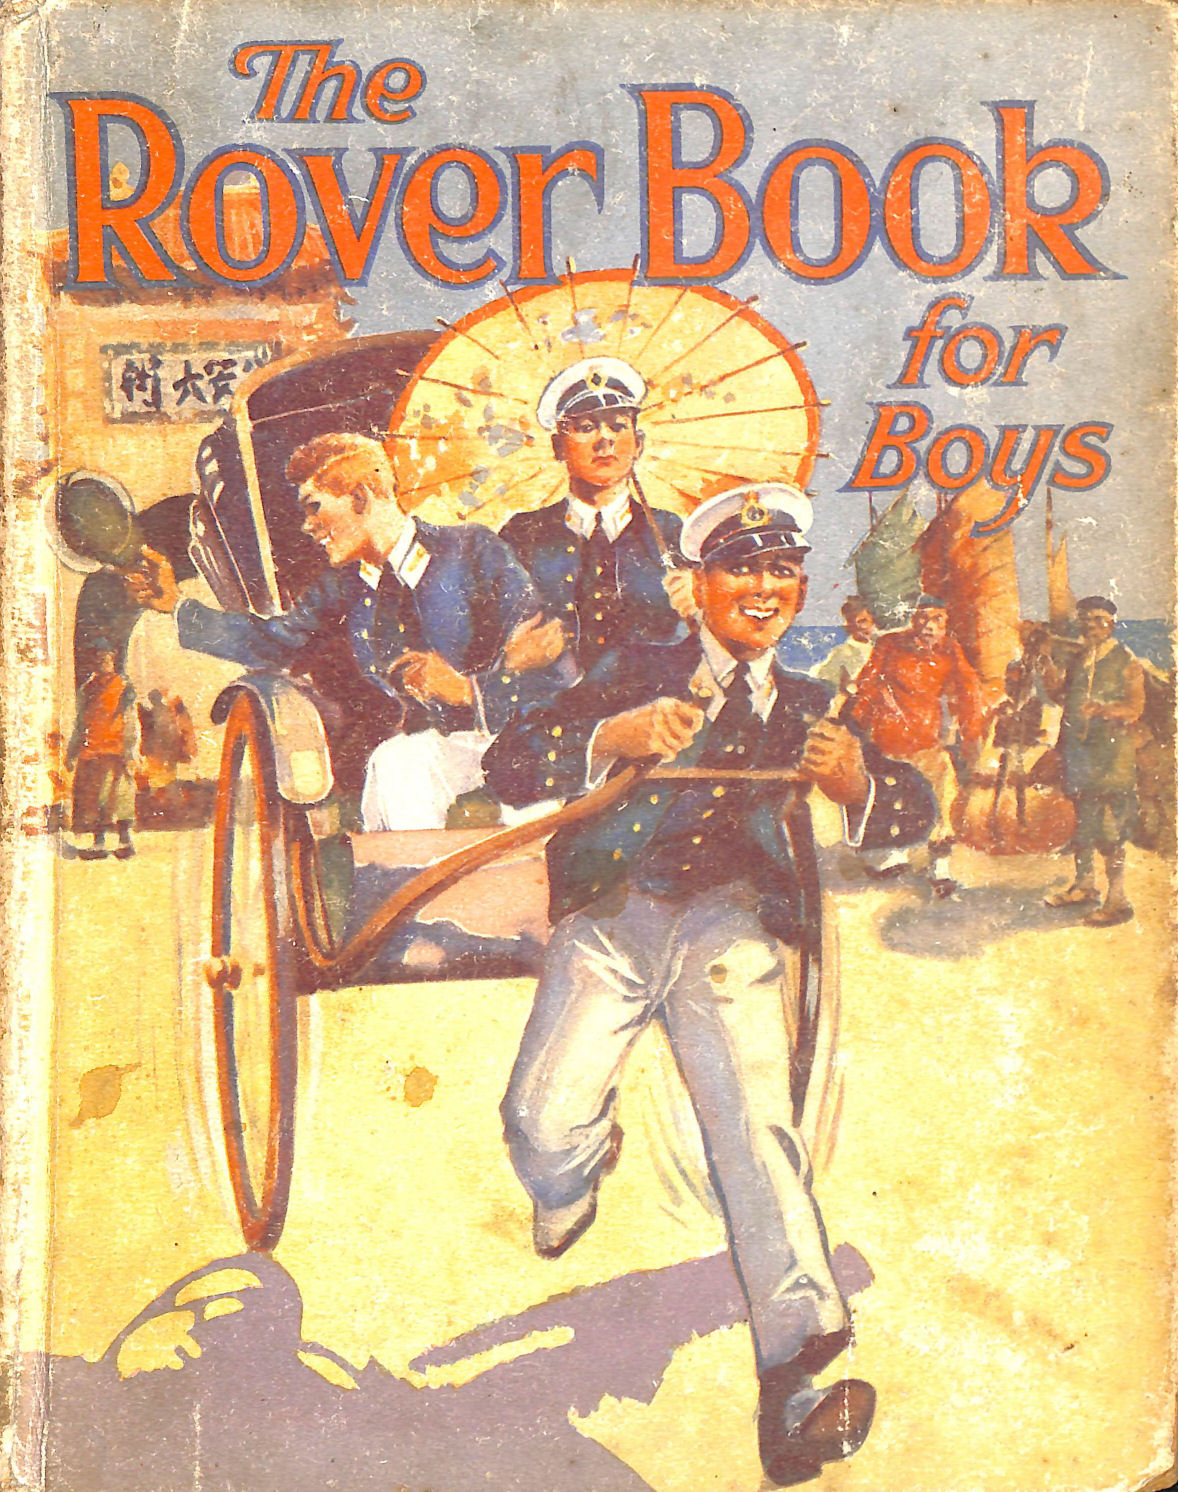 Image for The Rover Book for boys 1930